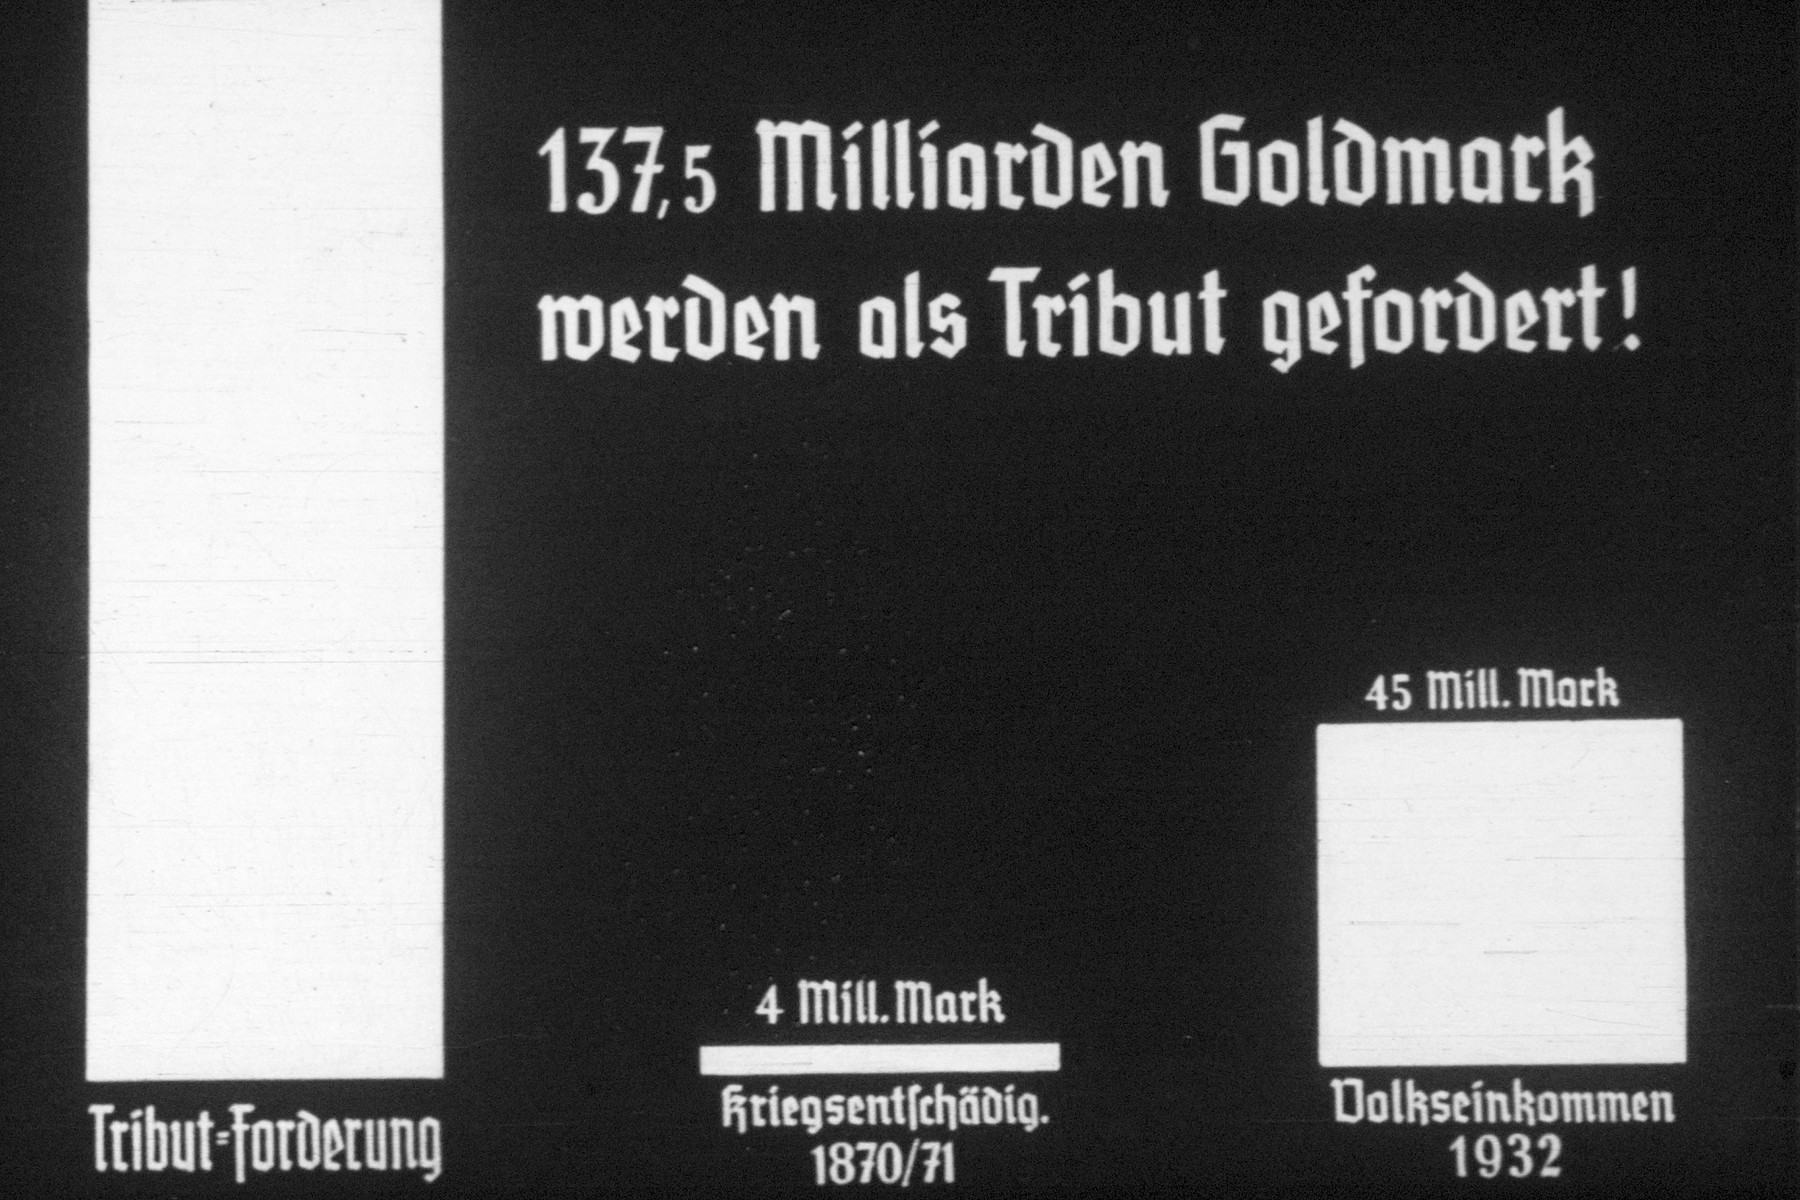 28th slide from a Hitler Youth slideshow about the aftermath of WWI, Versailles, how it was overcome and the rise of Nazism.  (bar graph)  137,5 Milliarden Goldmark werden als Tribut gefordert! // (137.5 billion gold marks are required as a tribute!)